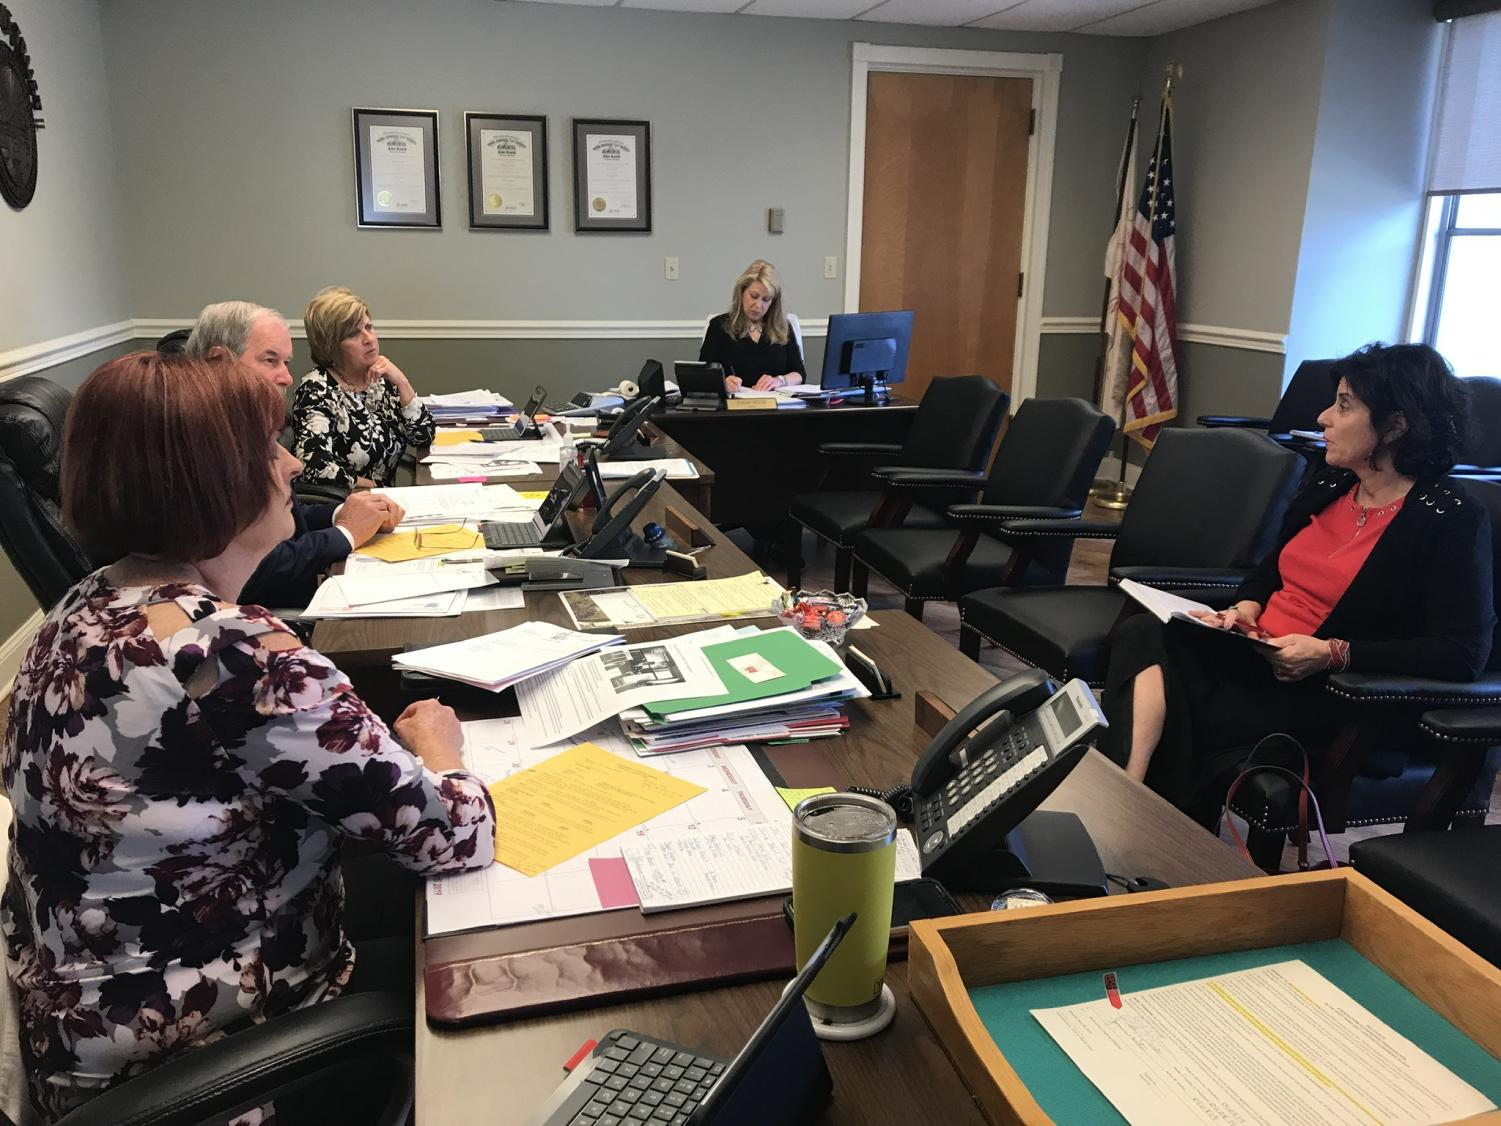 Danielle Mason, Eastern Regional Director for the Ohio Attorney General's Office, meets with the Muskingum County Commissioners Thursday morning.